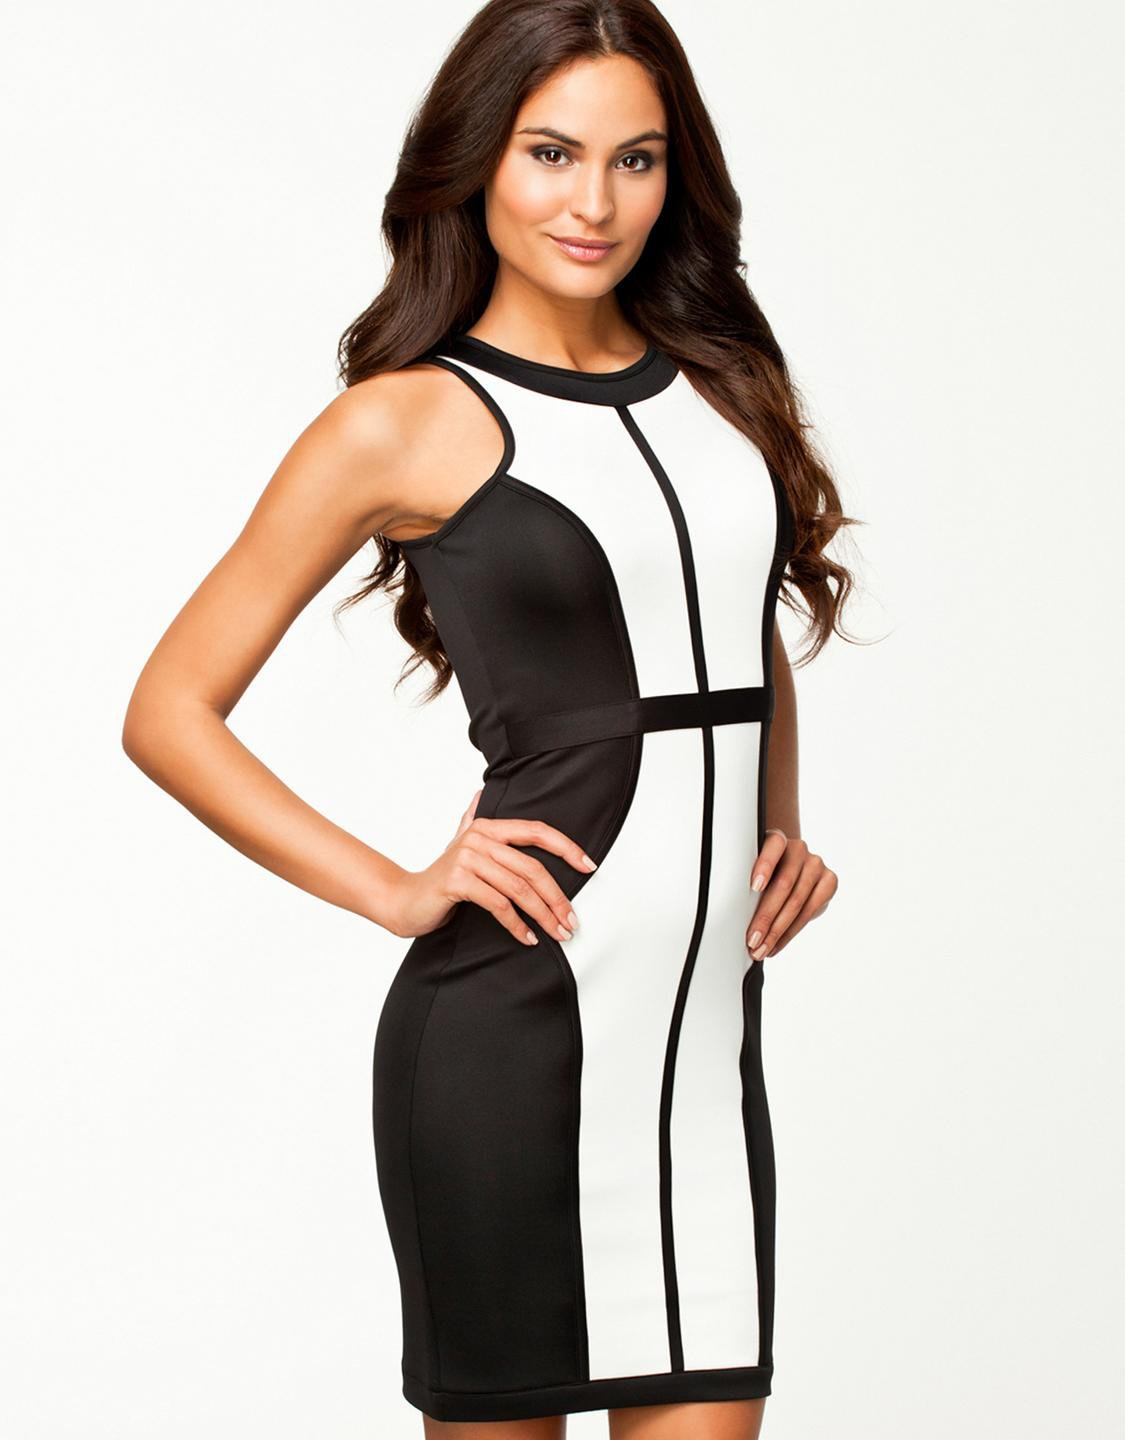 Sexy New Sleeveless One Size Black And White Dress With Unusual Details W573961